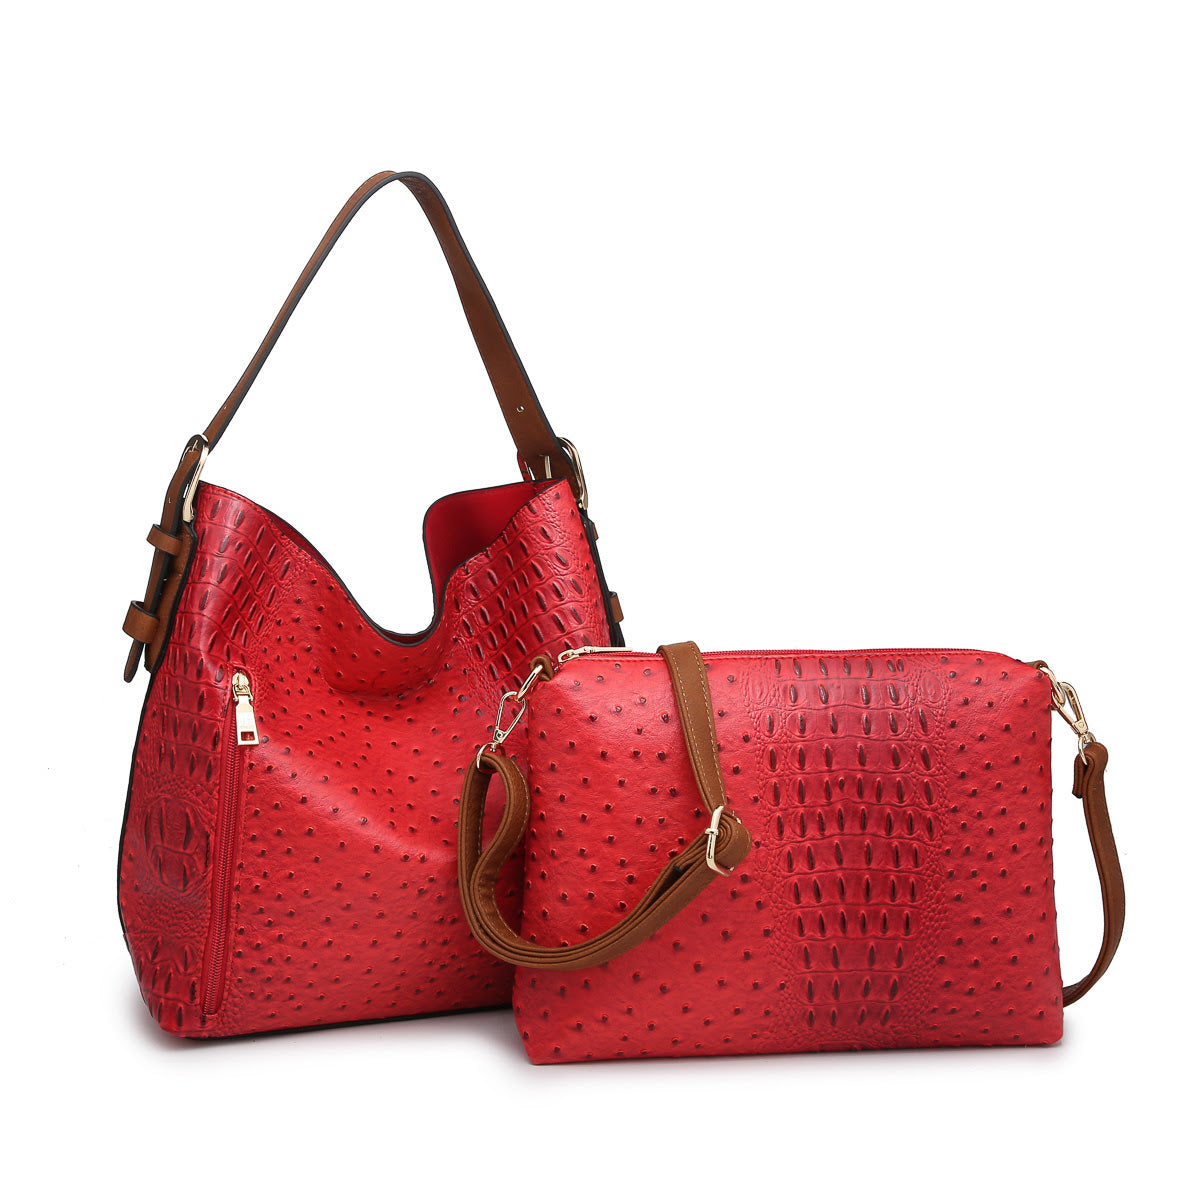 Textured Hobo Bag in a Bag in Red